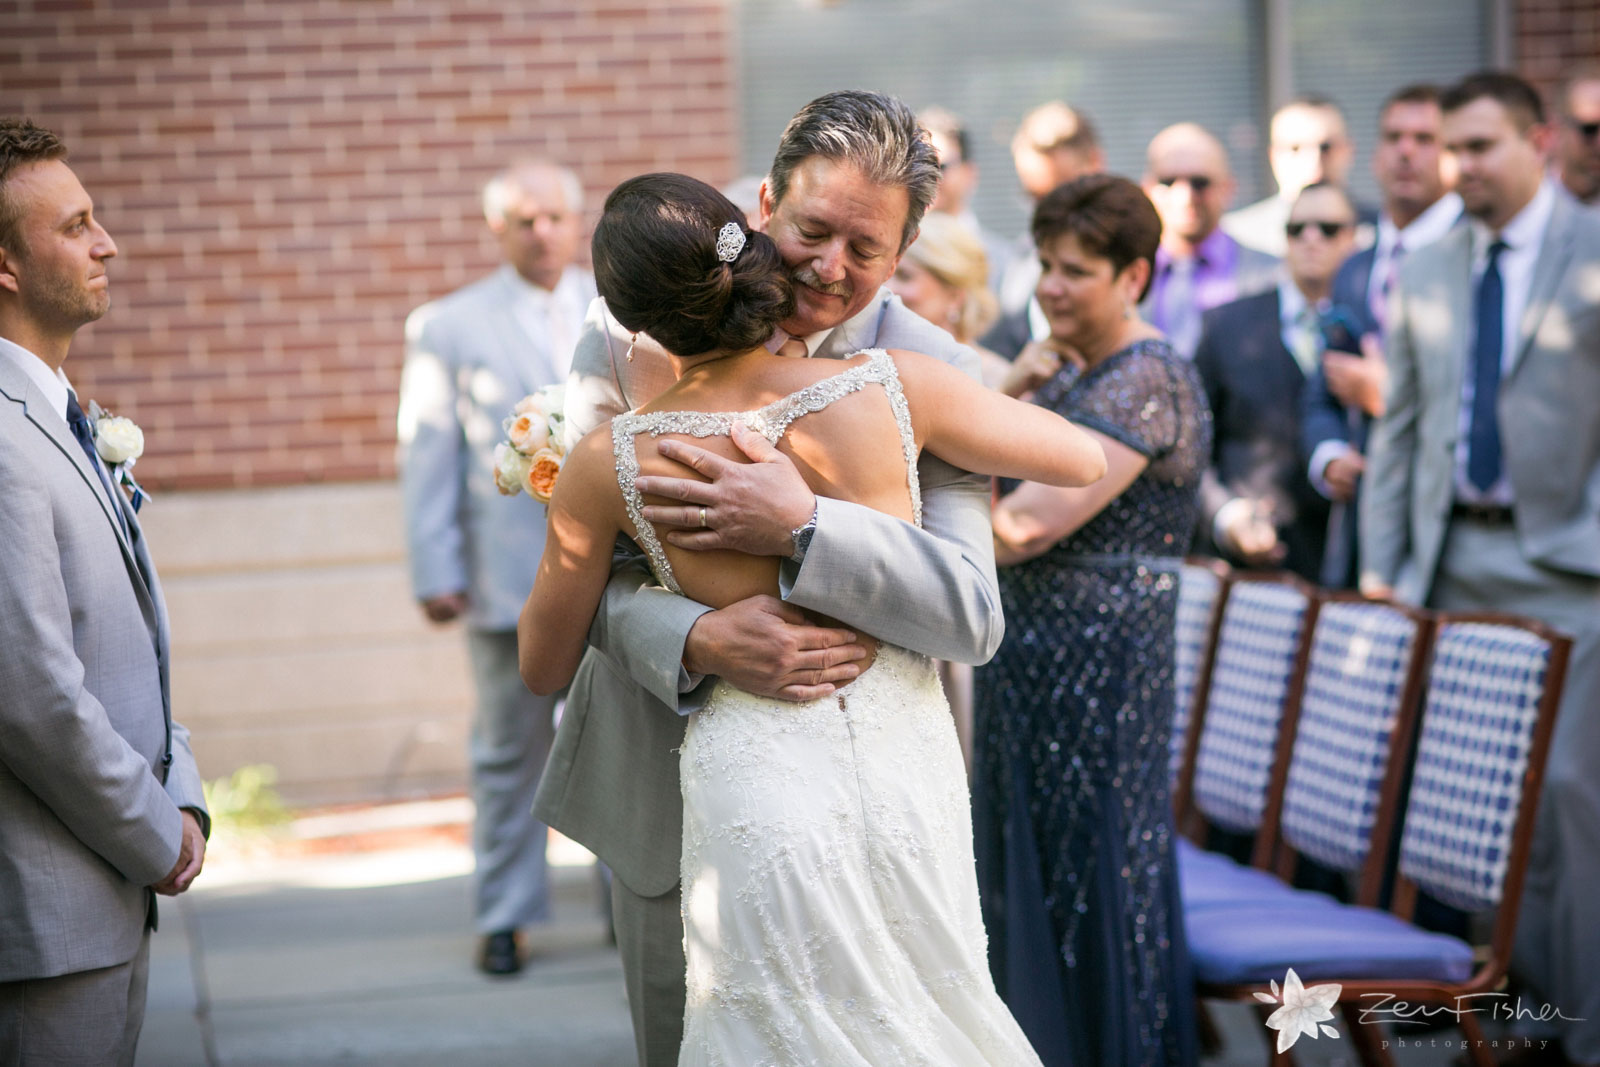 Liberty Hotel Boston wedding, Boston wedding photography, father giving away bride, bride and father